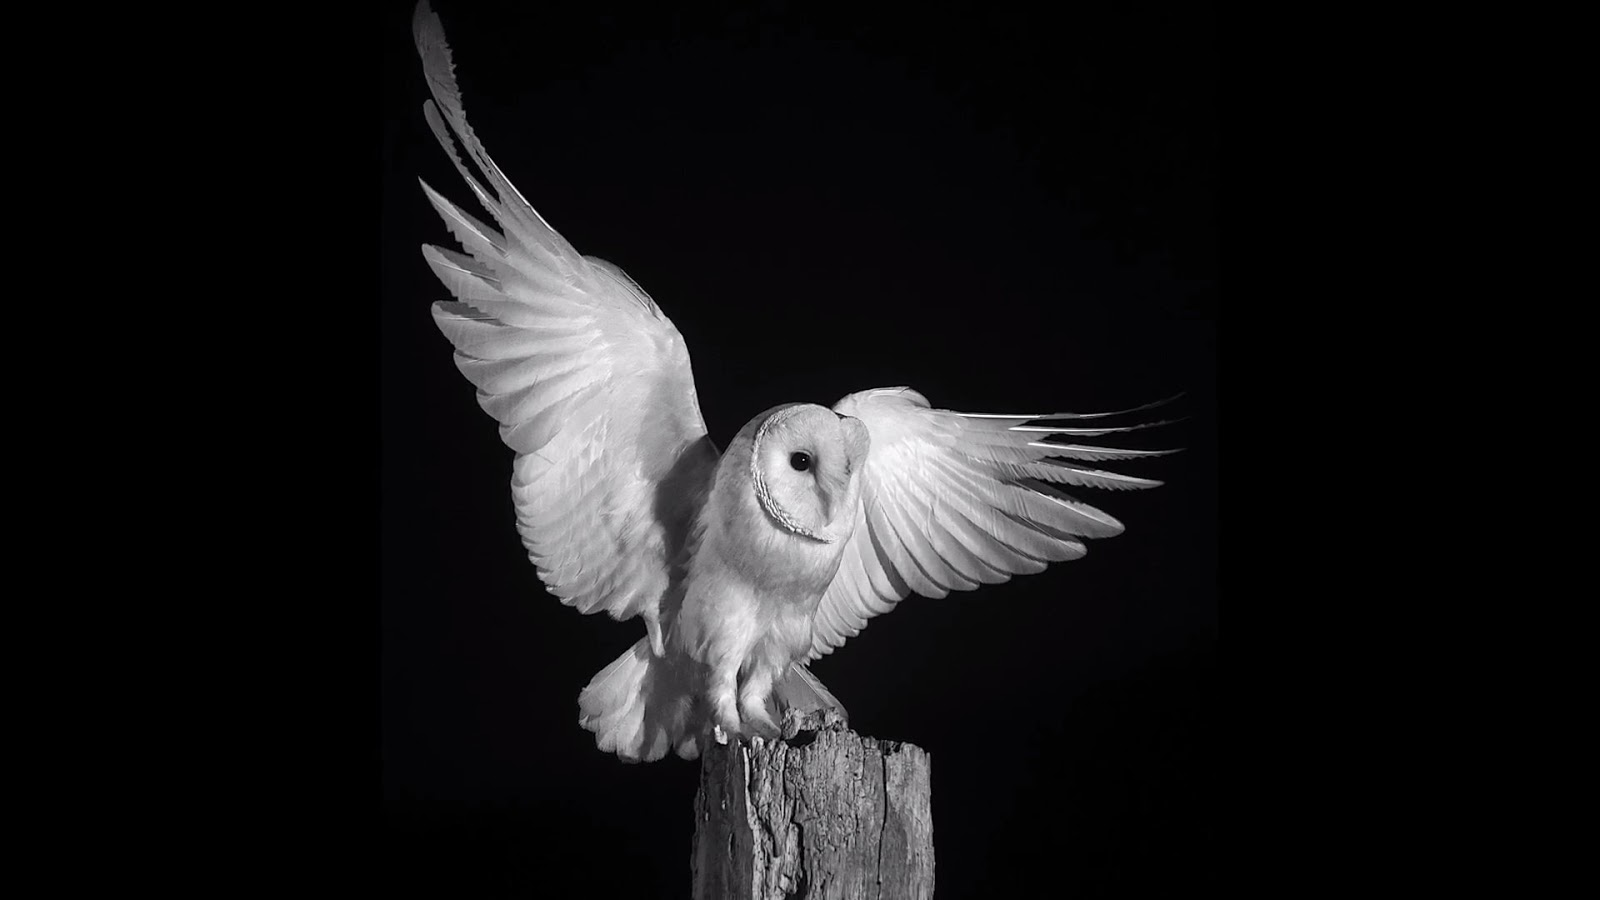 Photographing Owls at Night in Infrared